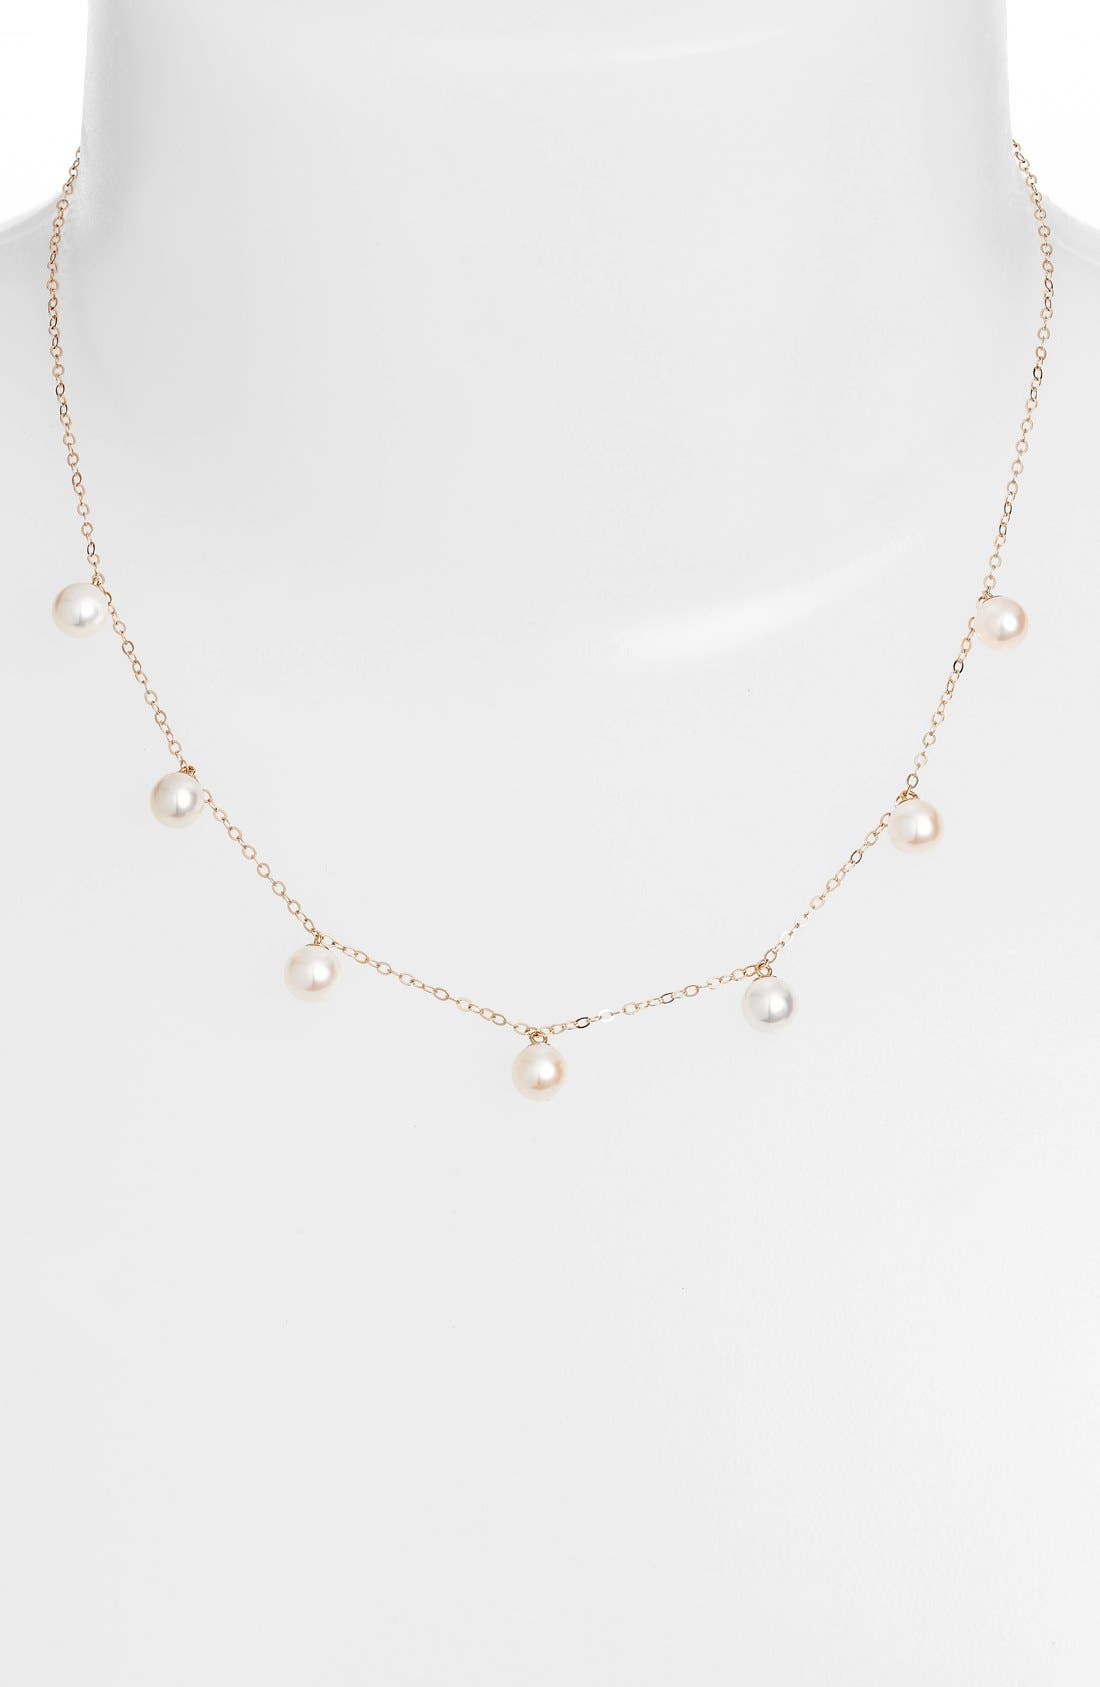 Poppy Finch Pearl Collar Necklace